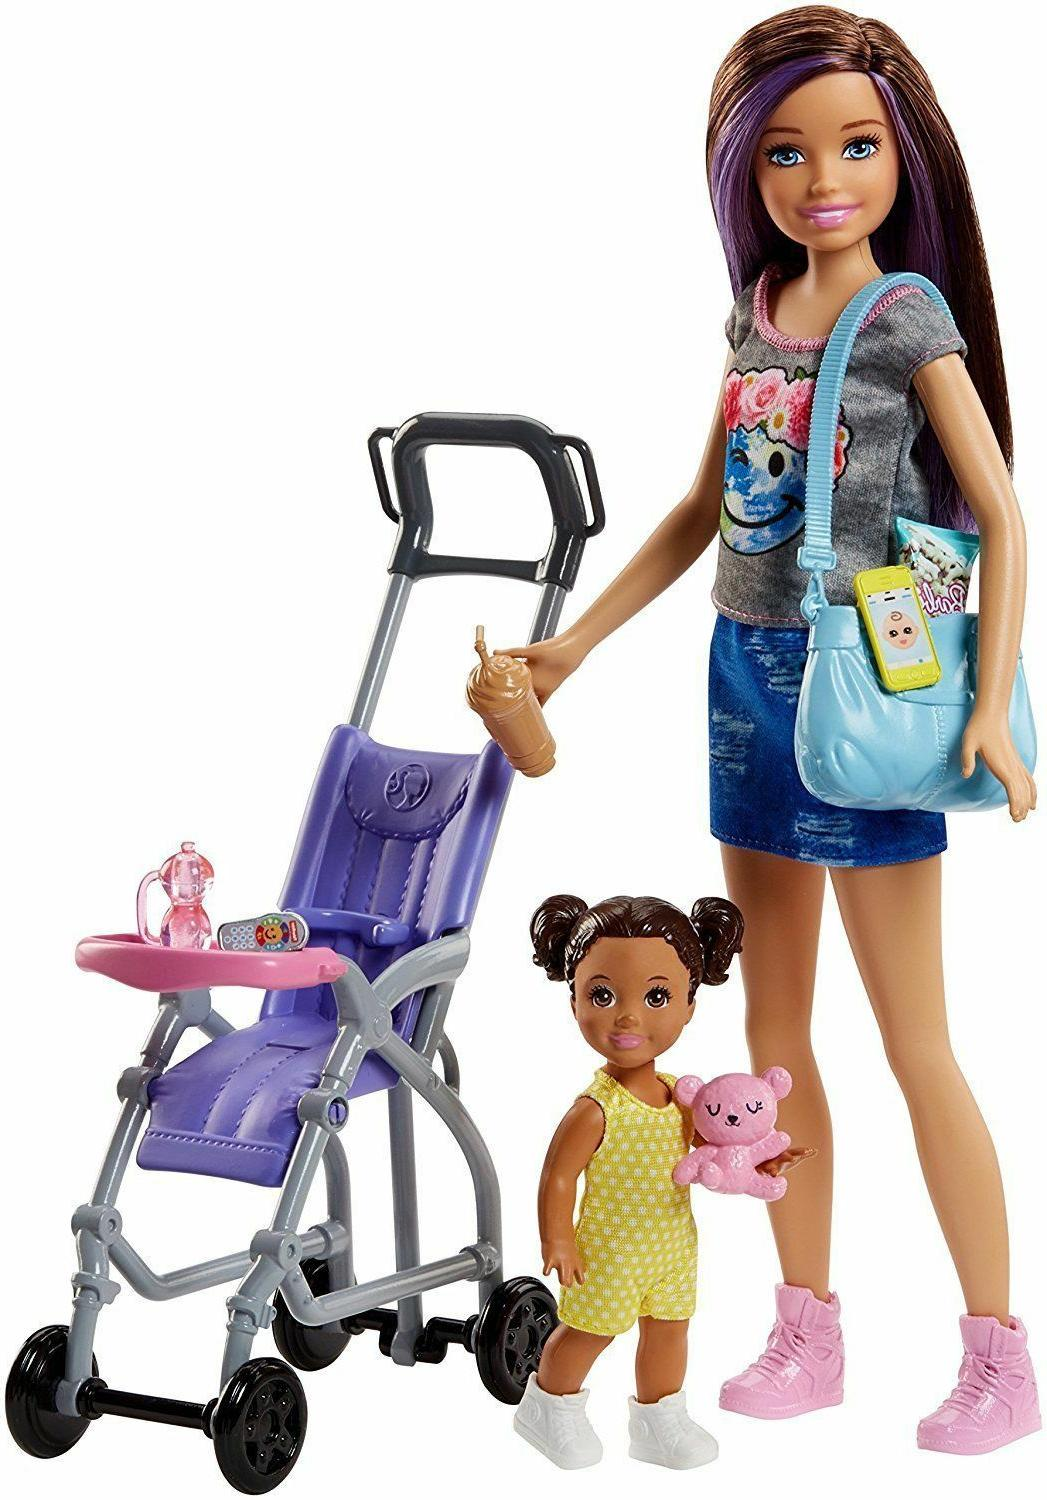 Barbie Skipper Babysitters Inc. Doll and Stroller Playset